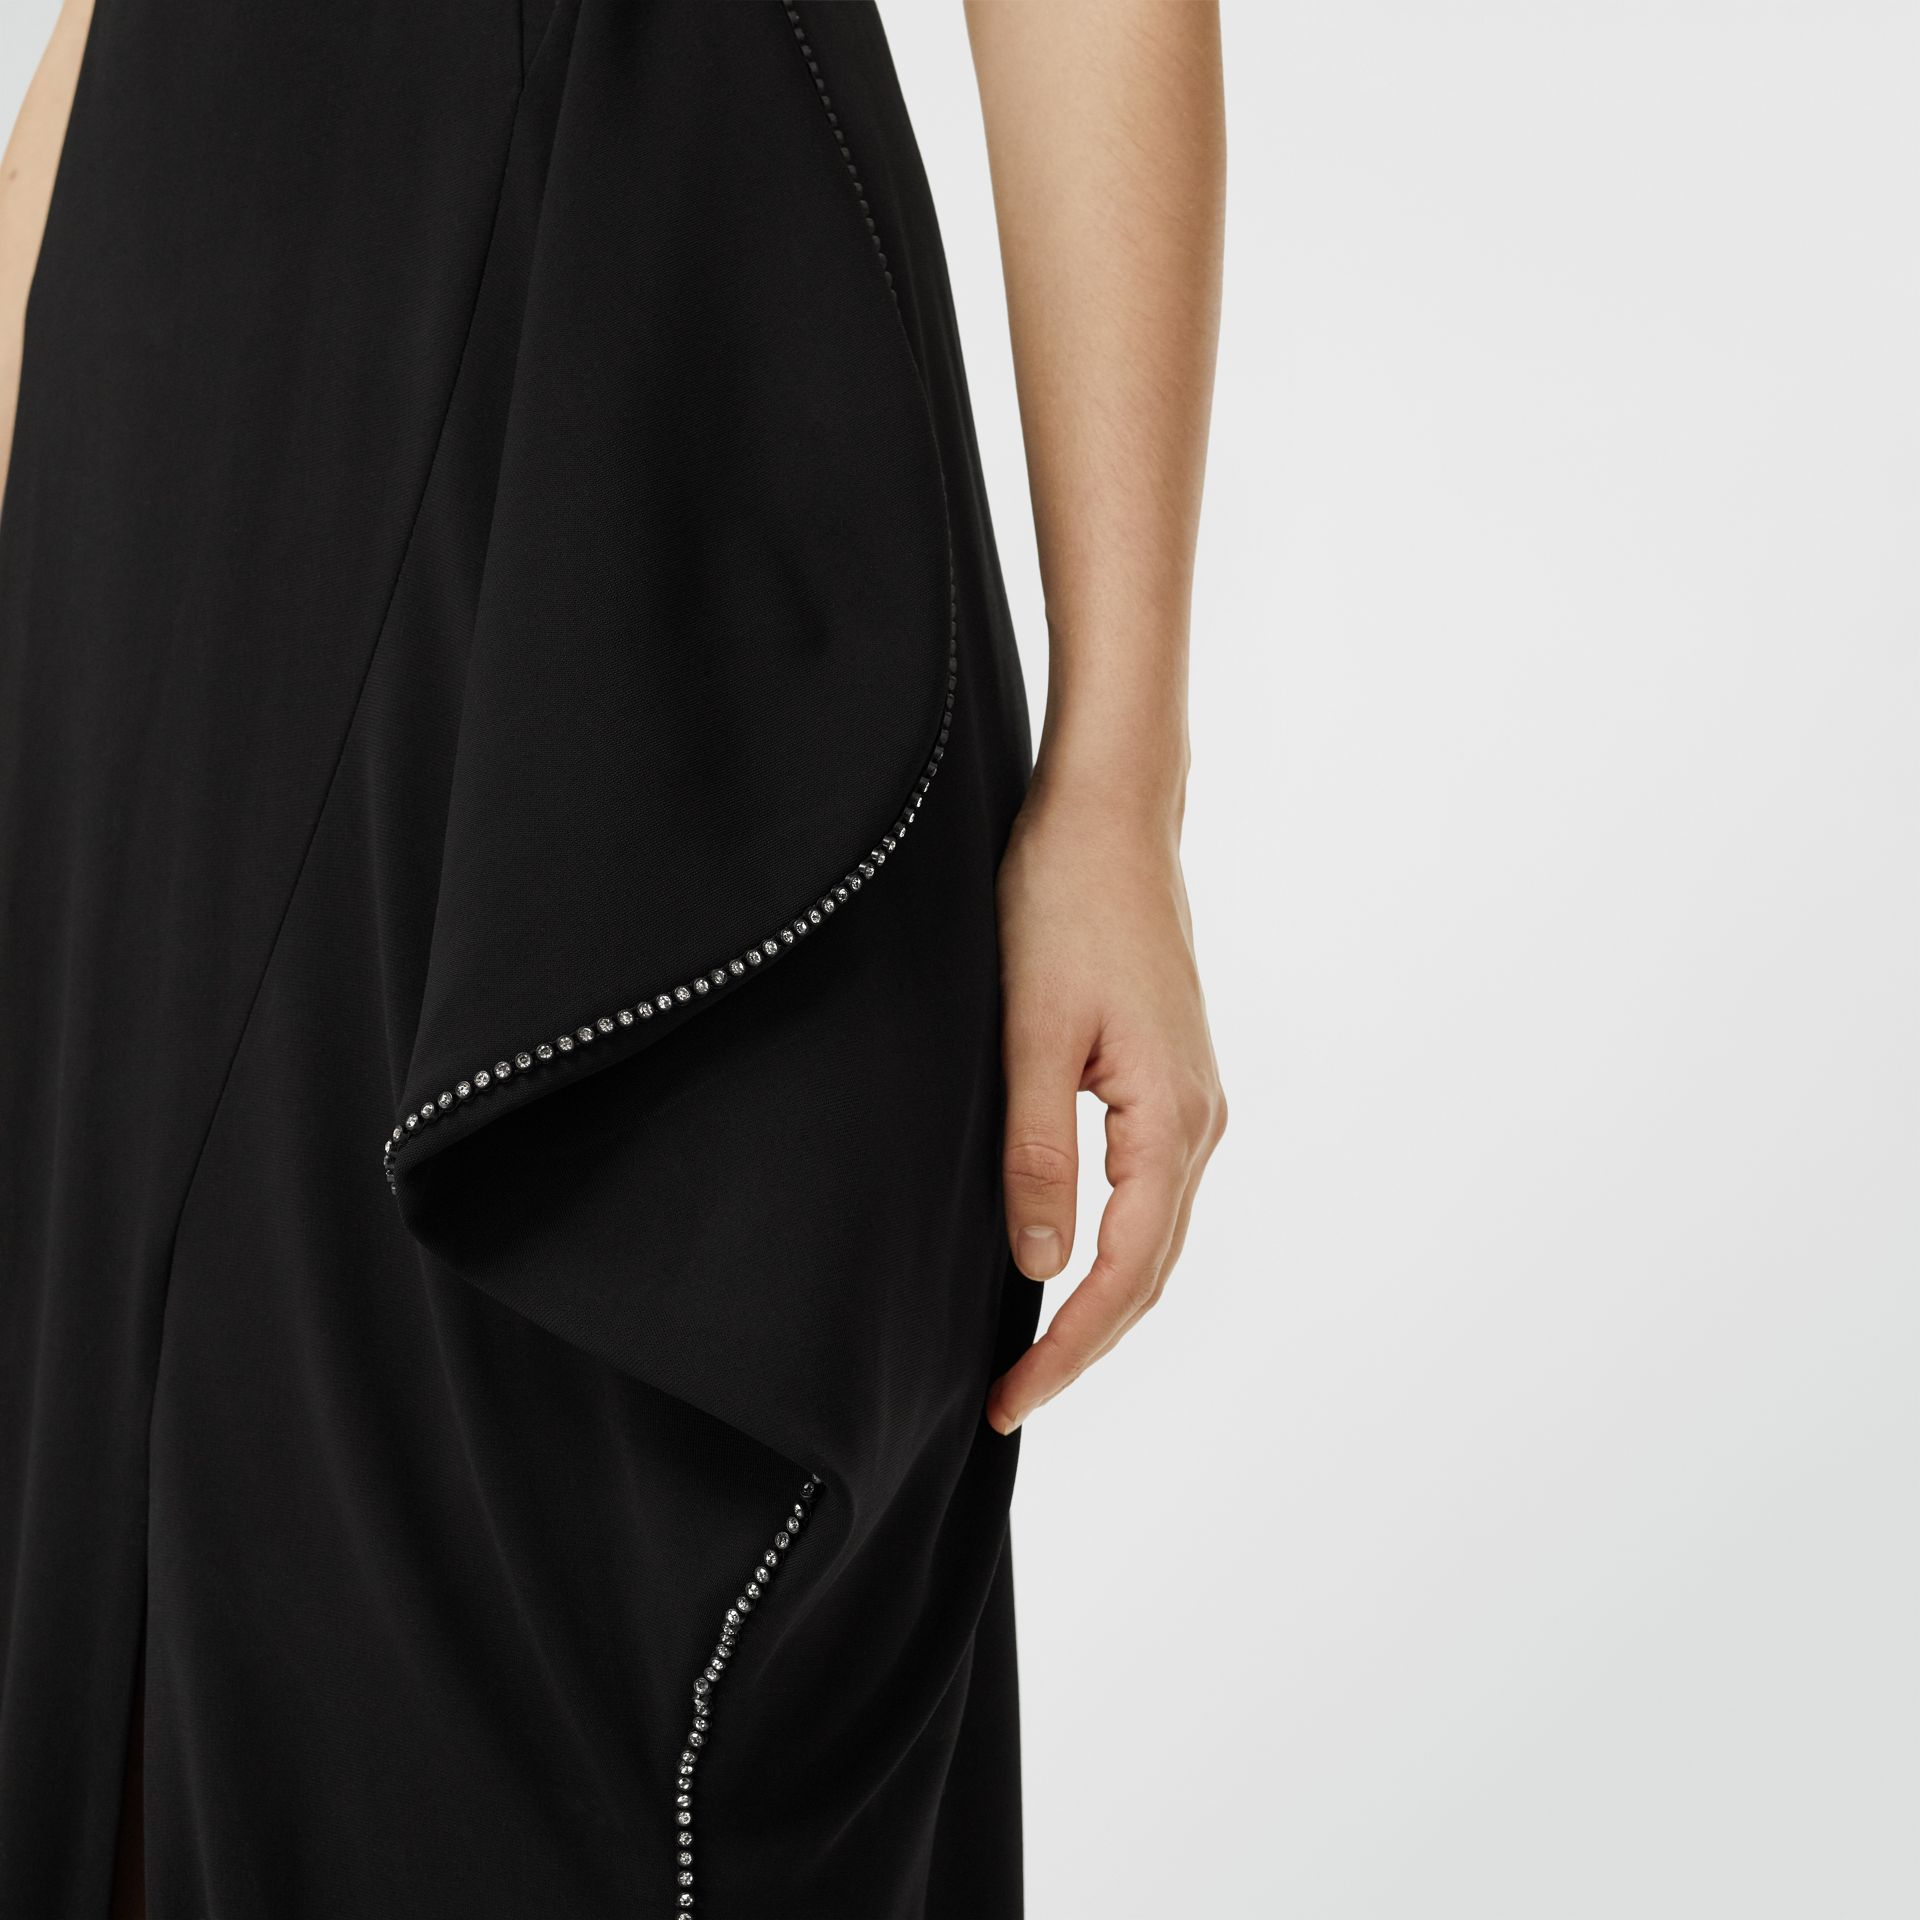 Crystal Detail Cut-out Stretch Jersey Gown in Black - Women | Burberry - gallery image 4